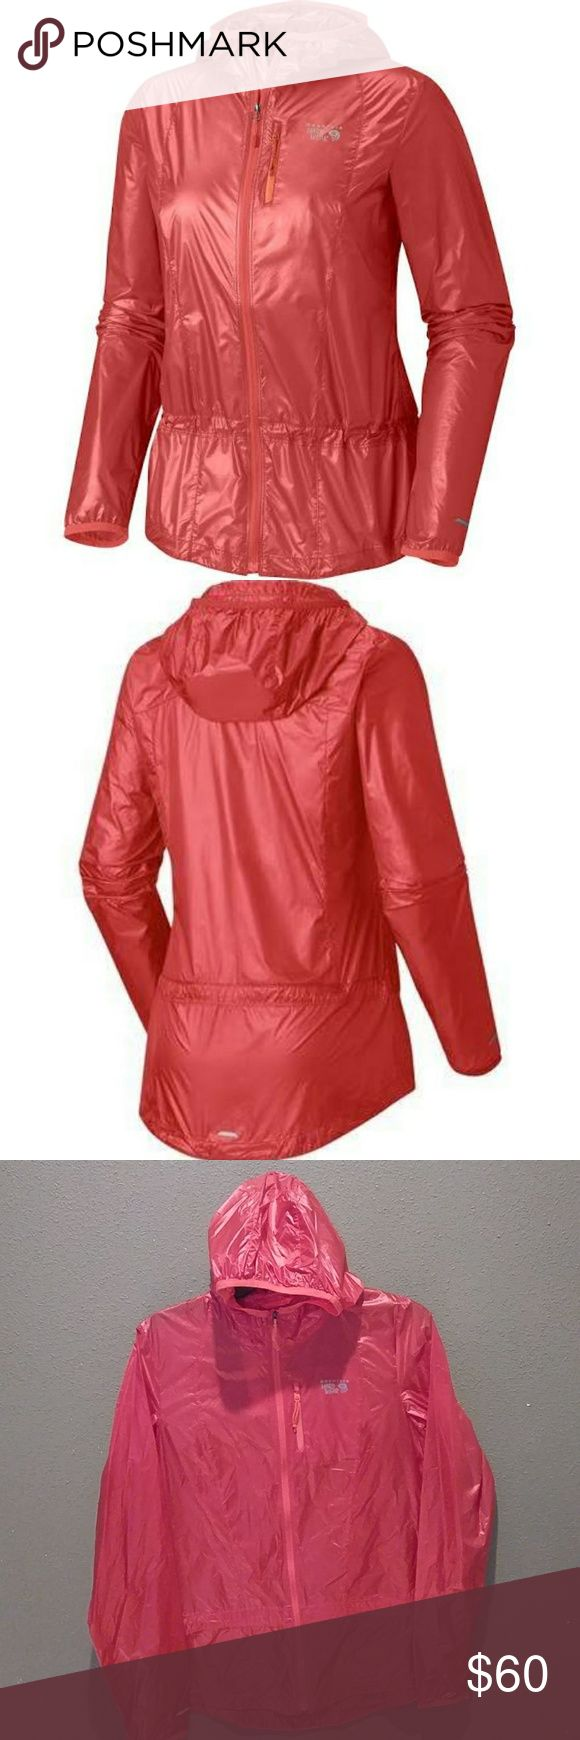 🌼Mountain Hardwear Ghost Lite Jacket🌼 Weather-resistant running and cross-training shell that weighs only 3 oz. A hooded jacket simply can't get any lighter. Weighing in at a mind-bending 3 oz., the Ghost Lite is so featherweight and airy that training in it is a pleasure, even in adverse conditions. Able to compress down into its own pocket to wait until the weather turns, this jacket is an athlete's dream. Mountain Hardwear Jackets & Coats